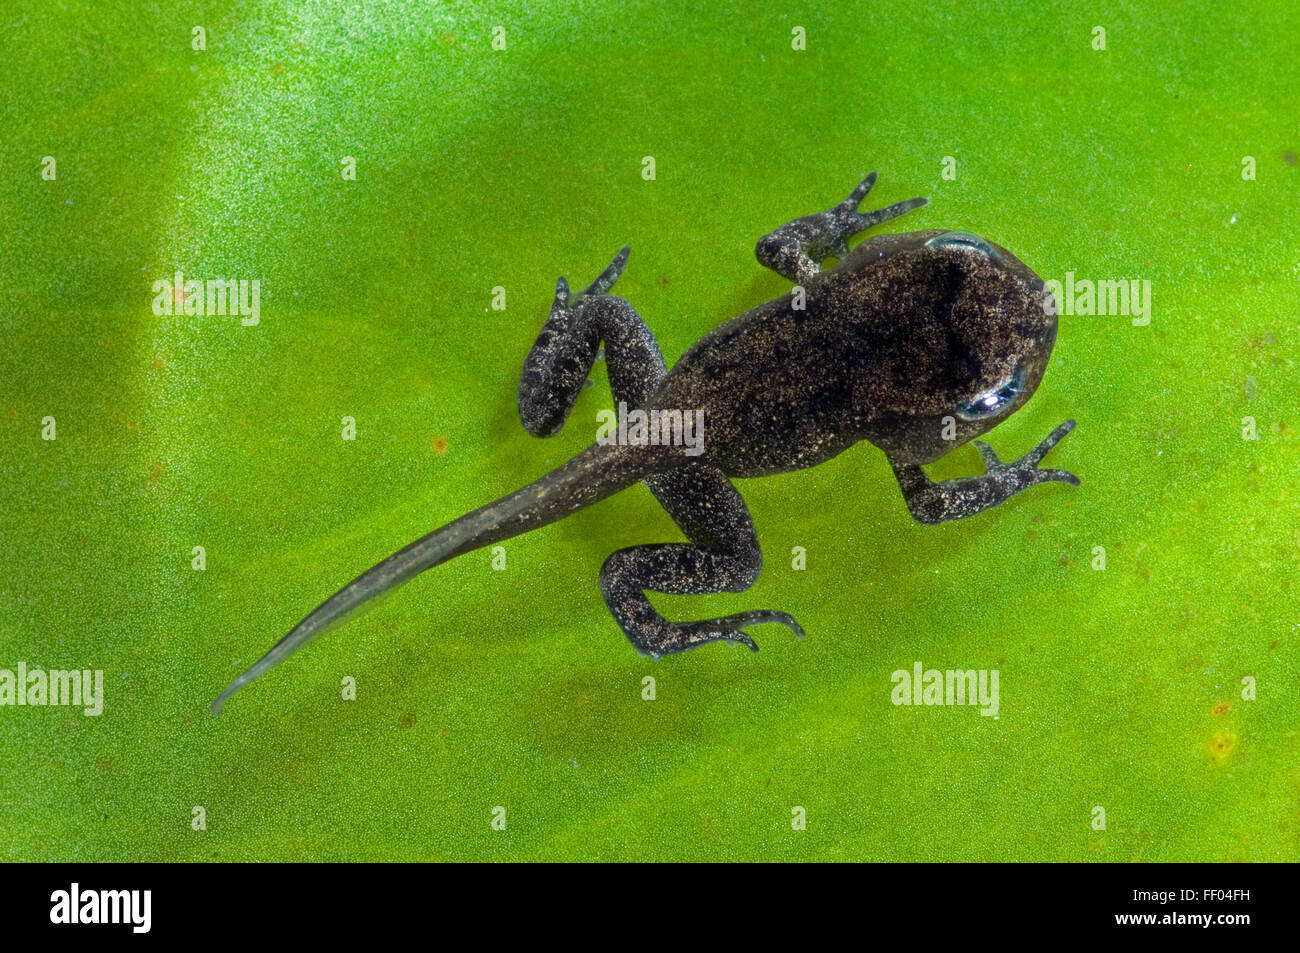 Common Frog (Rana temporaria) froglet with limbs well developed but tail not started to be reabsorbed - Stock Image